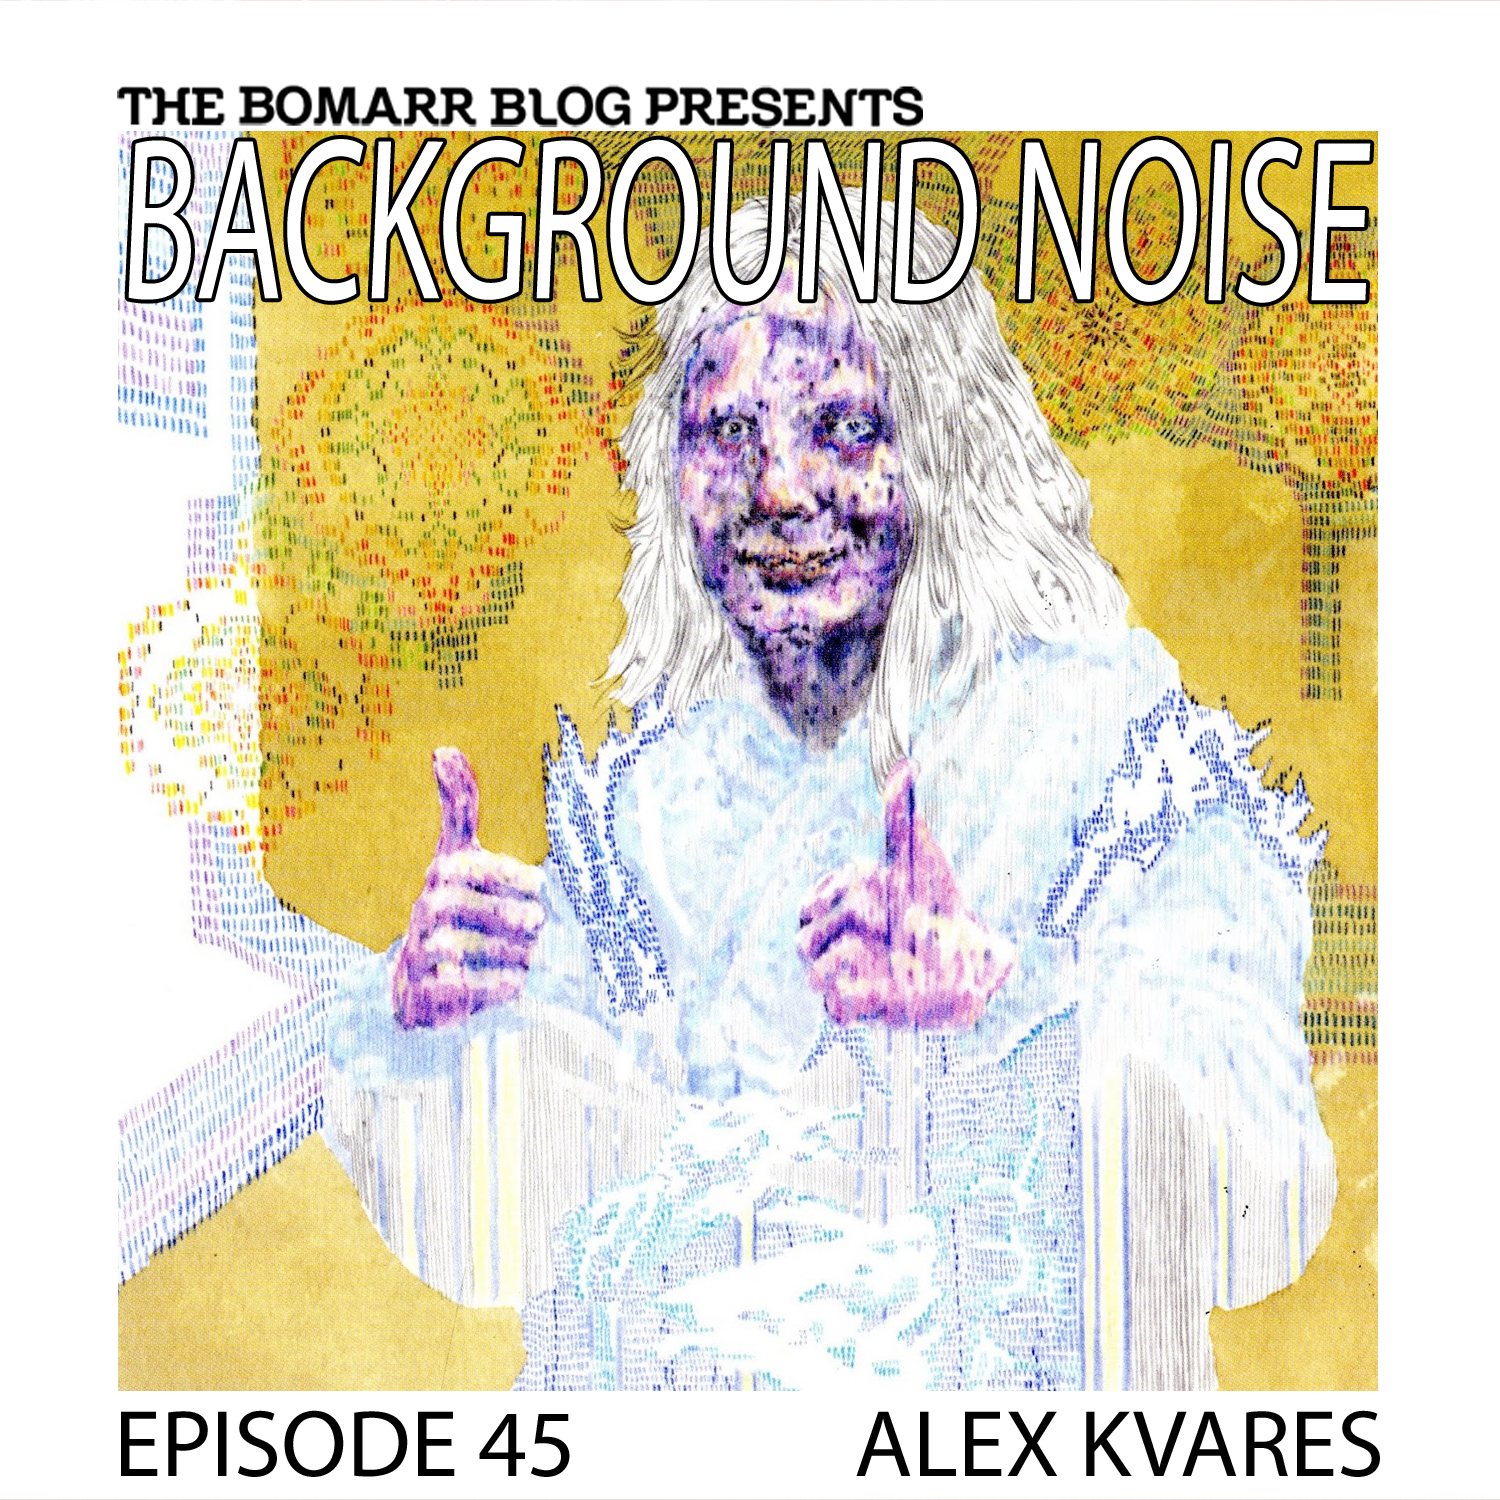 "THE ""BACKGROUND NOISE"" PODCAST SERIES FOCUSES ON THE MUSIC THAT ARTISTS LISTEN TO WHEN THEY WORK, WHAT MUSIC INSPIRES THEM, OR JUST MUSIC THEY LIKE. THIS WEEK, IN EPISODE 45, THE FOCUS IS ON ARTIST ALEX KVARES"